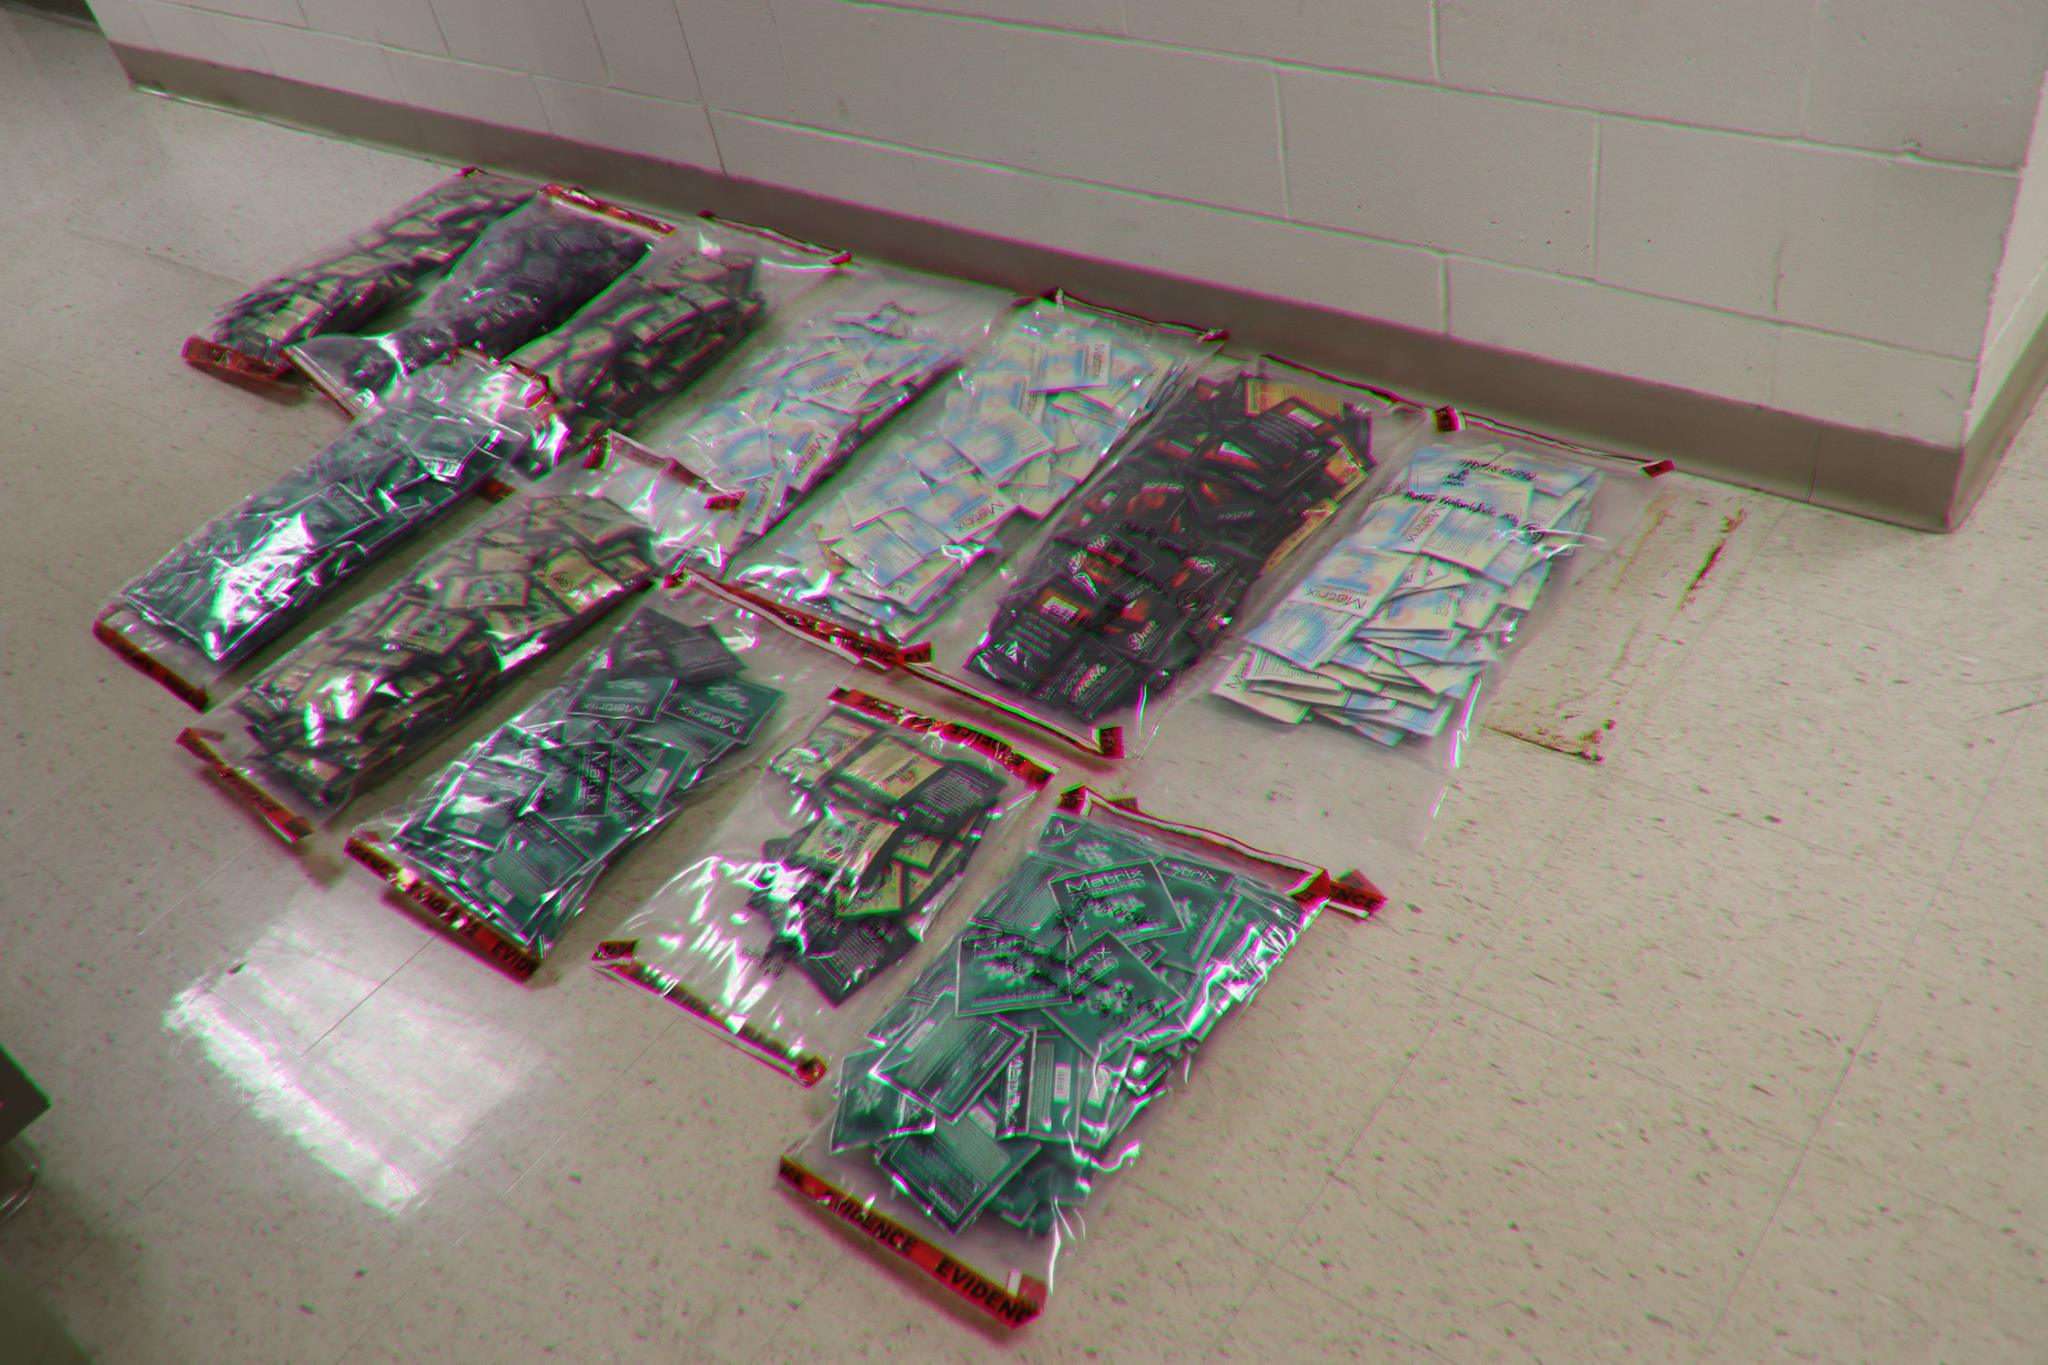 As a result of an investigation, Pekin police were able to take 3500 packets of K2/Spice off the streets. (Pekin Police Department)